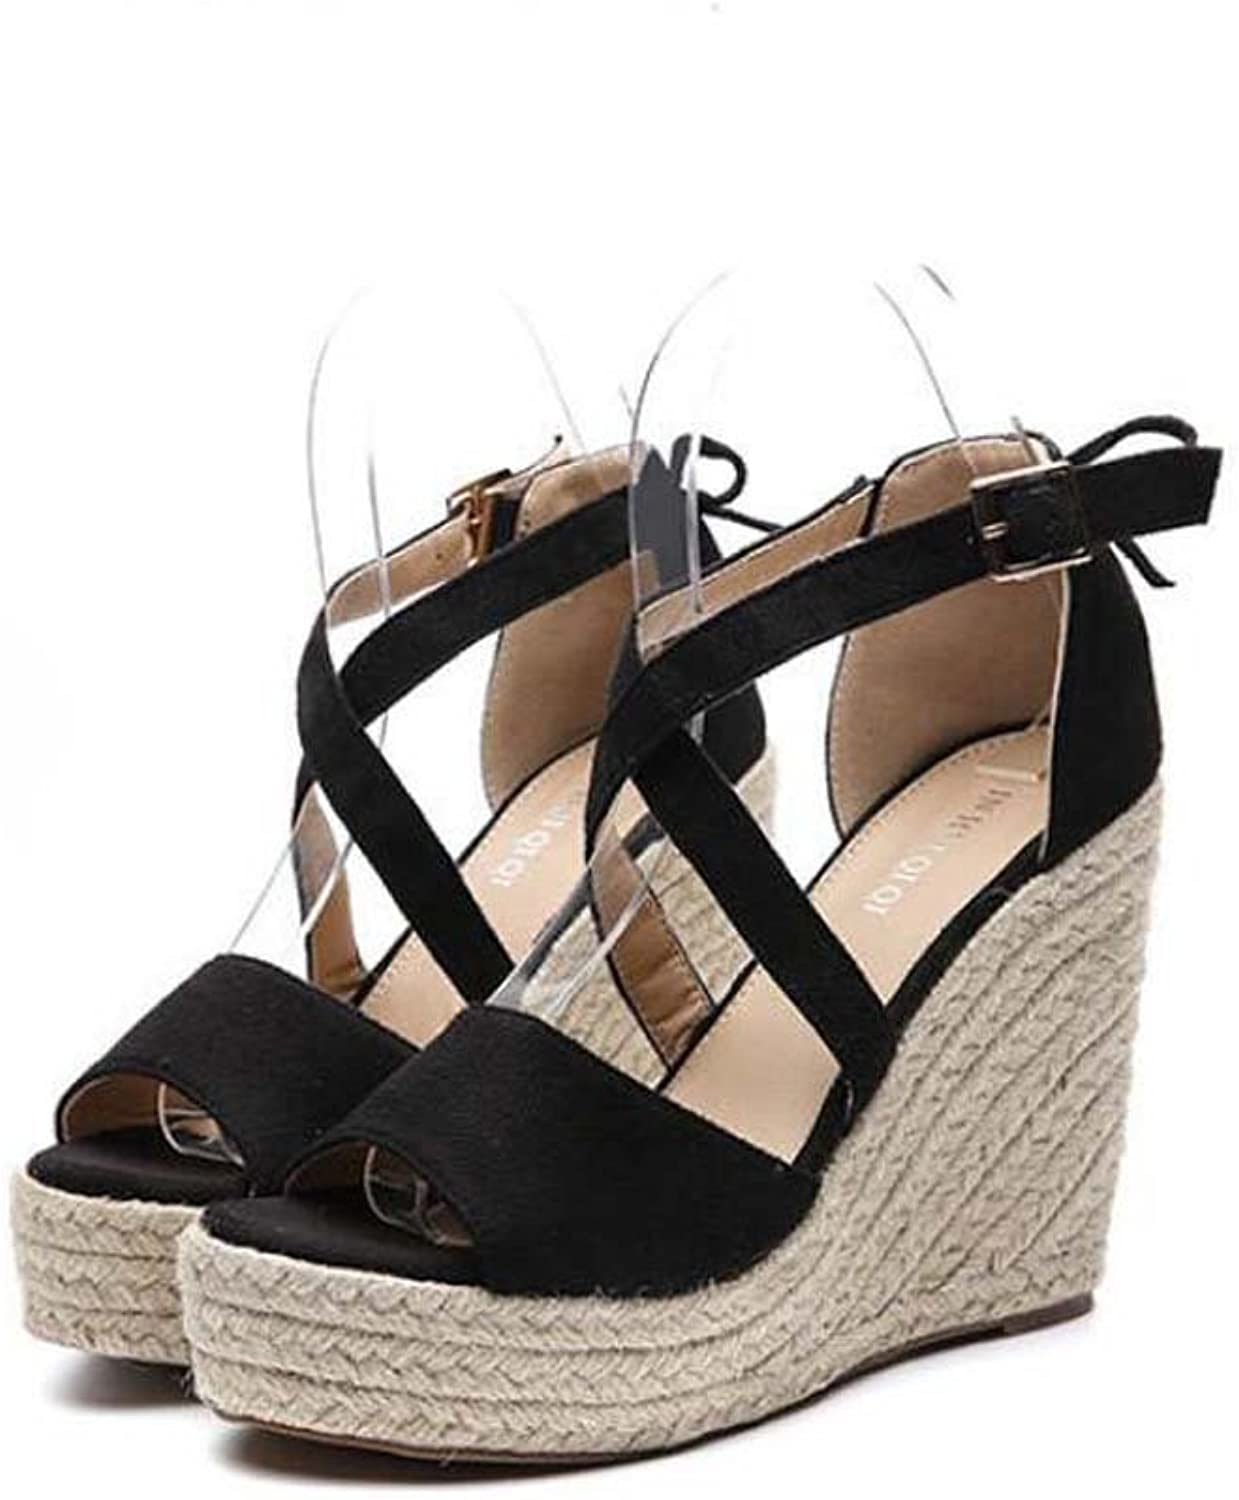 Pump 11.5cm Wedge Heel X-Strap Sandals Hemp Rope Dress shoes Women Fashion Peep Toe D'Orsay Belt Buckle OL Court shoes Roma shoes EU Size 34-40